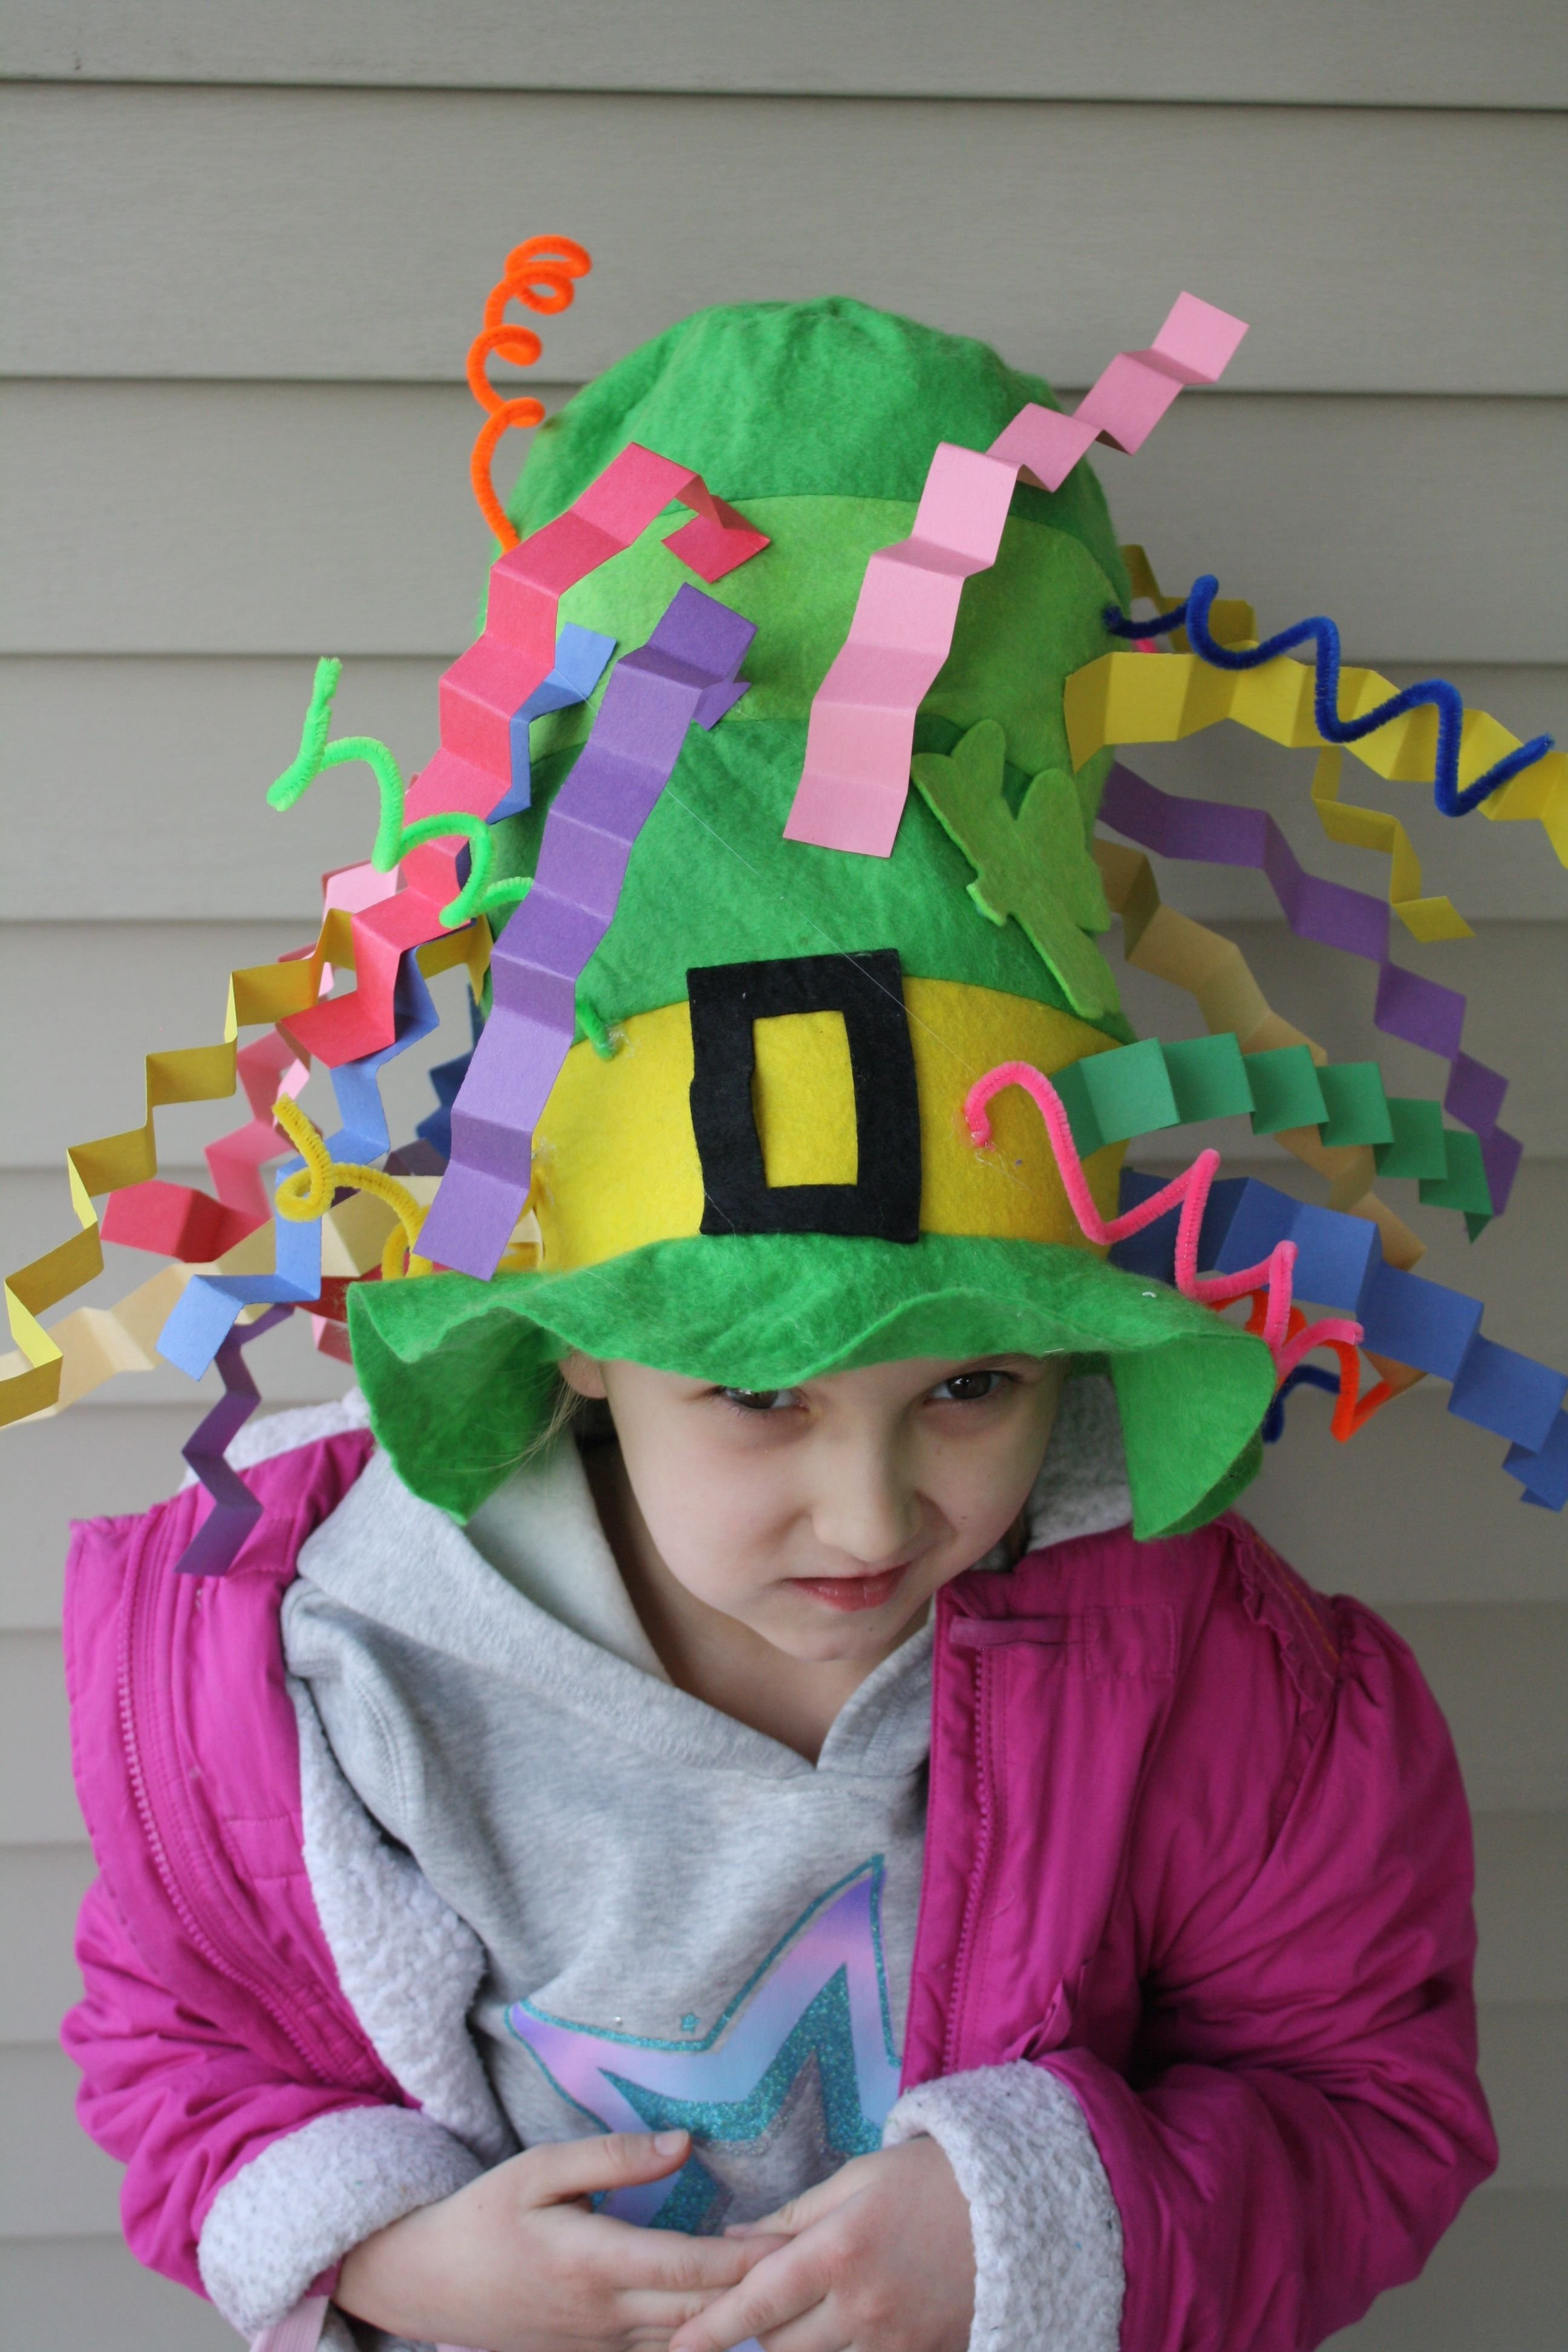 10 Great Crazy Hat Day Ideas For Kids crazy hat day crazy hat day ideas for school happy mad hatter 1 2021